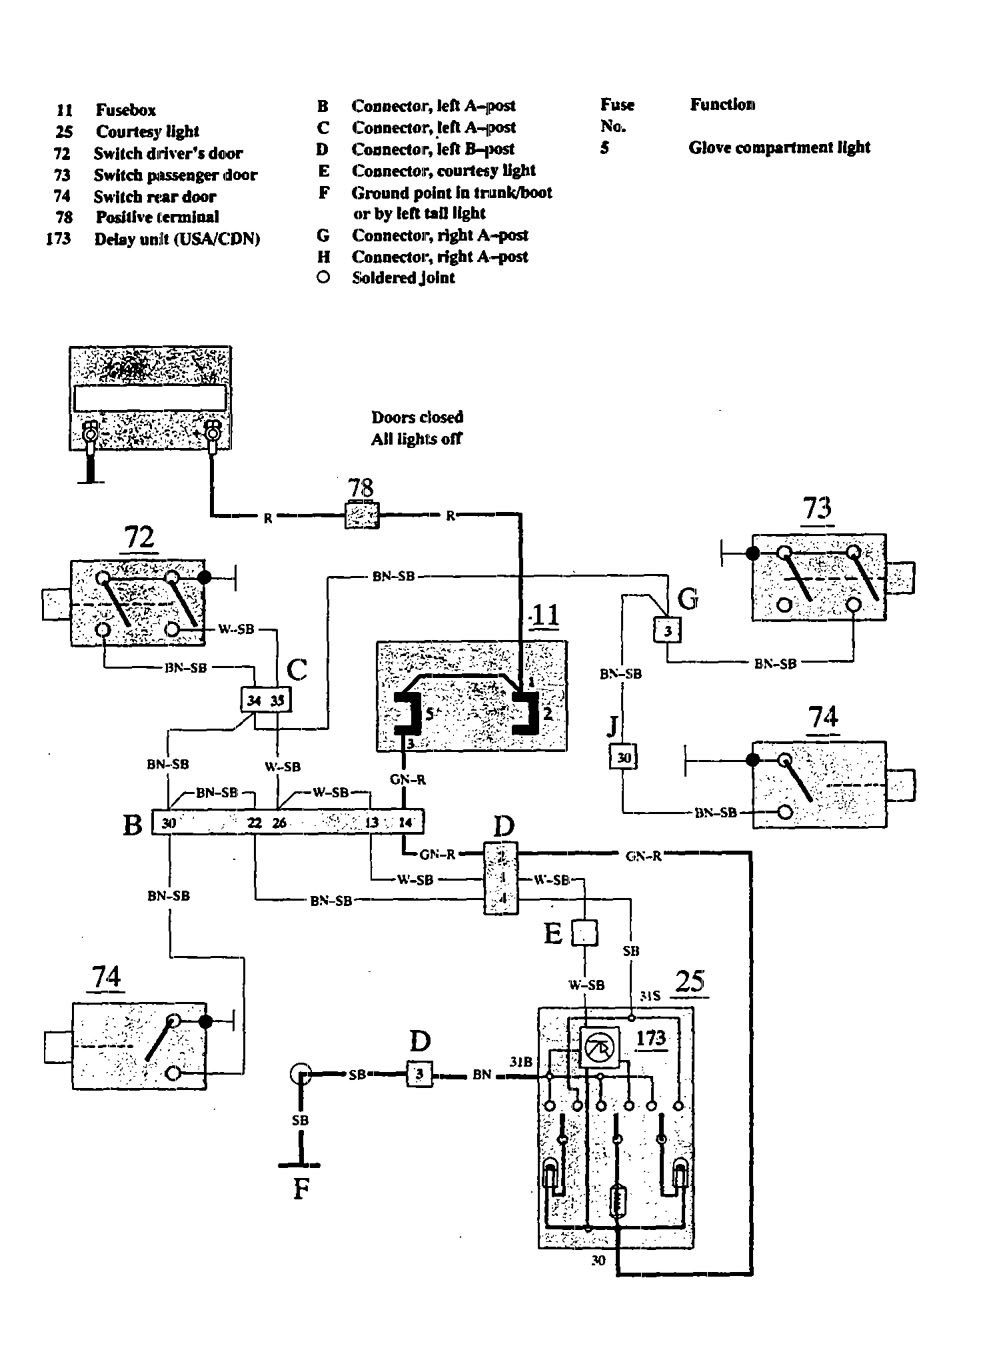 1995 Volvo 960 Wiring Diagram Schematic Diagrams Marine Engine 240 House Symbols 2004 Xc90